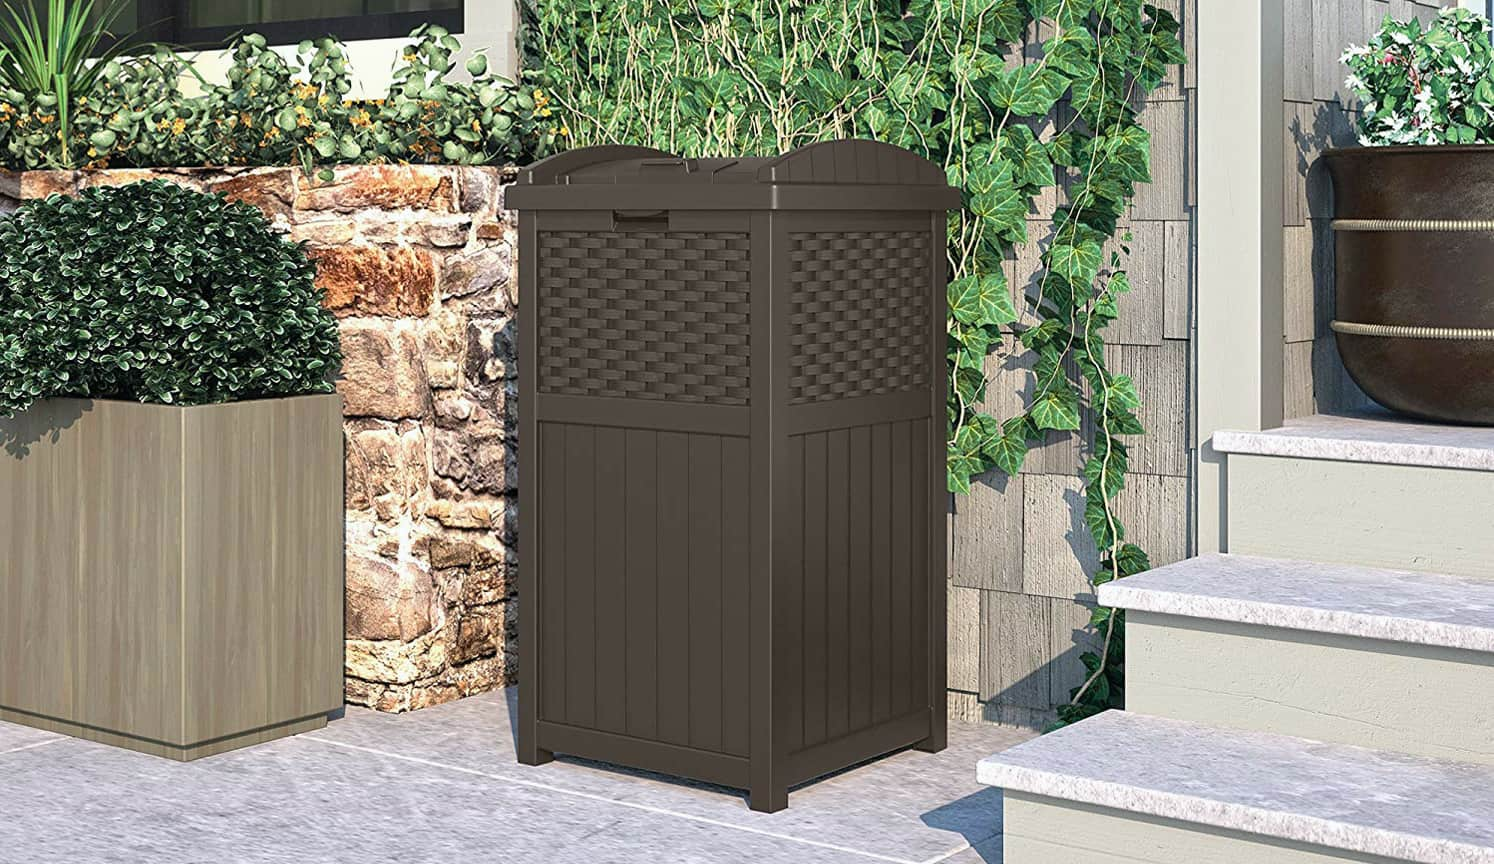 Outdoor Trash Bin as the first related product of Outdoor Trash Can